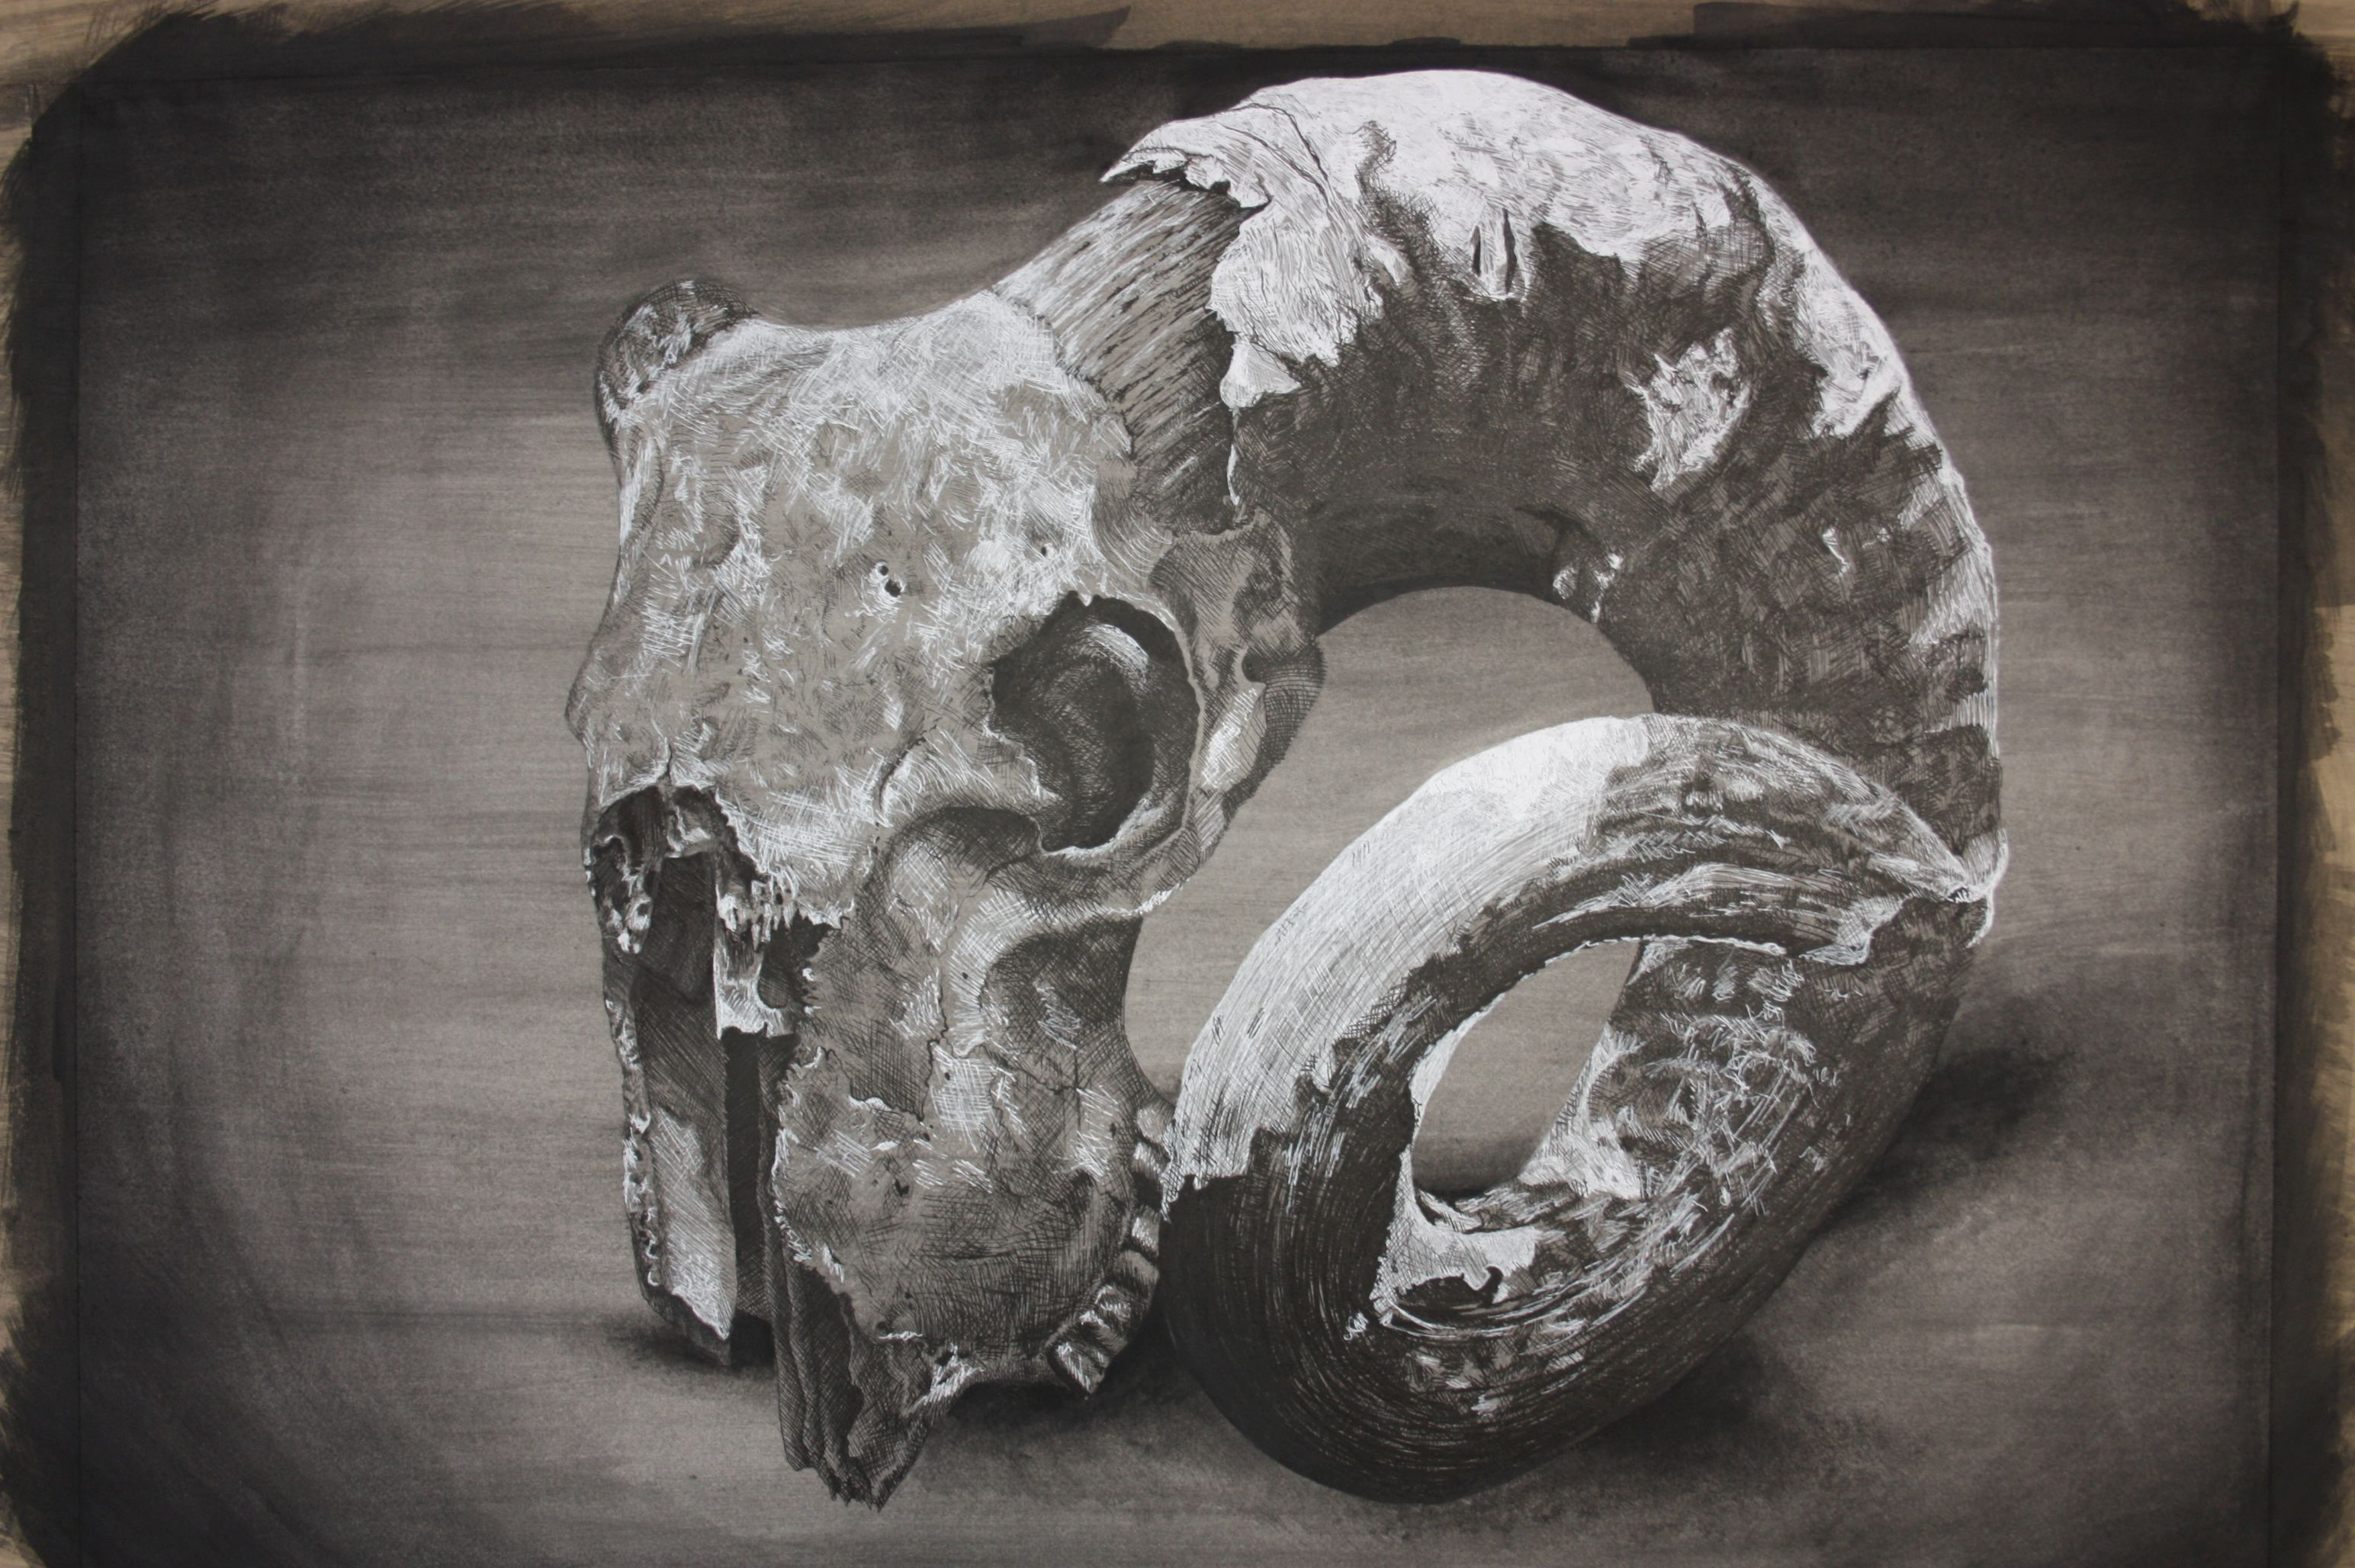 Livia Robinson, Thomas Alleyne's High,Skull, unframed 40cm x 50cm, watercolour pen and ink.jpg